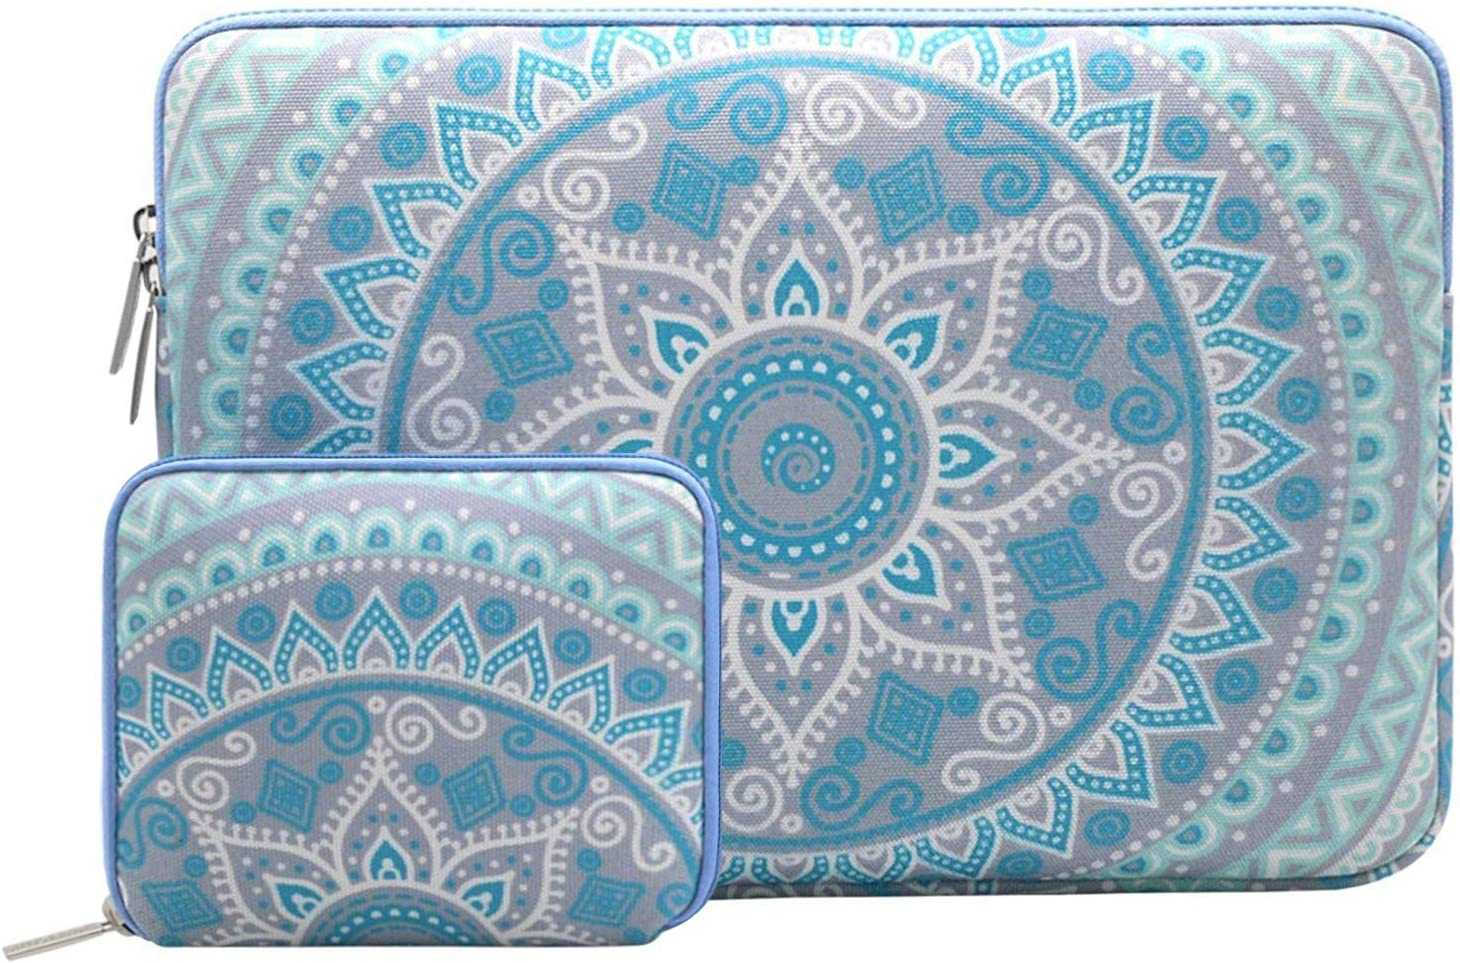 MOSISO Laptop Sleeve Compatible with 12.3 inch Microsoft Surface Pro 6/5/4/3, 11-11.6 inch MacBook Air, Ultrabook with Small Case, Canvas Mandala Pattern Carrying Bag, Mint Green and Blue